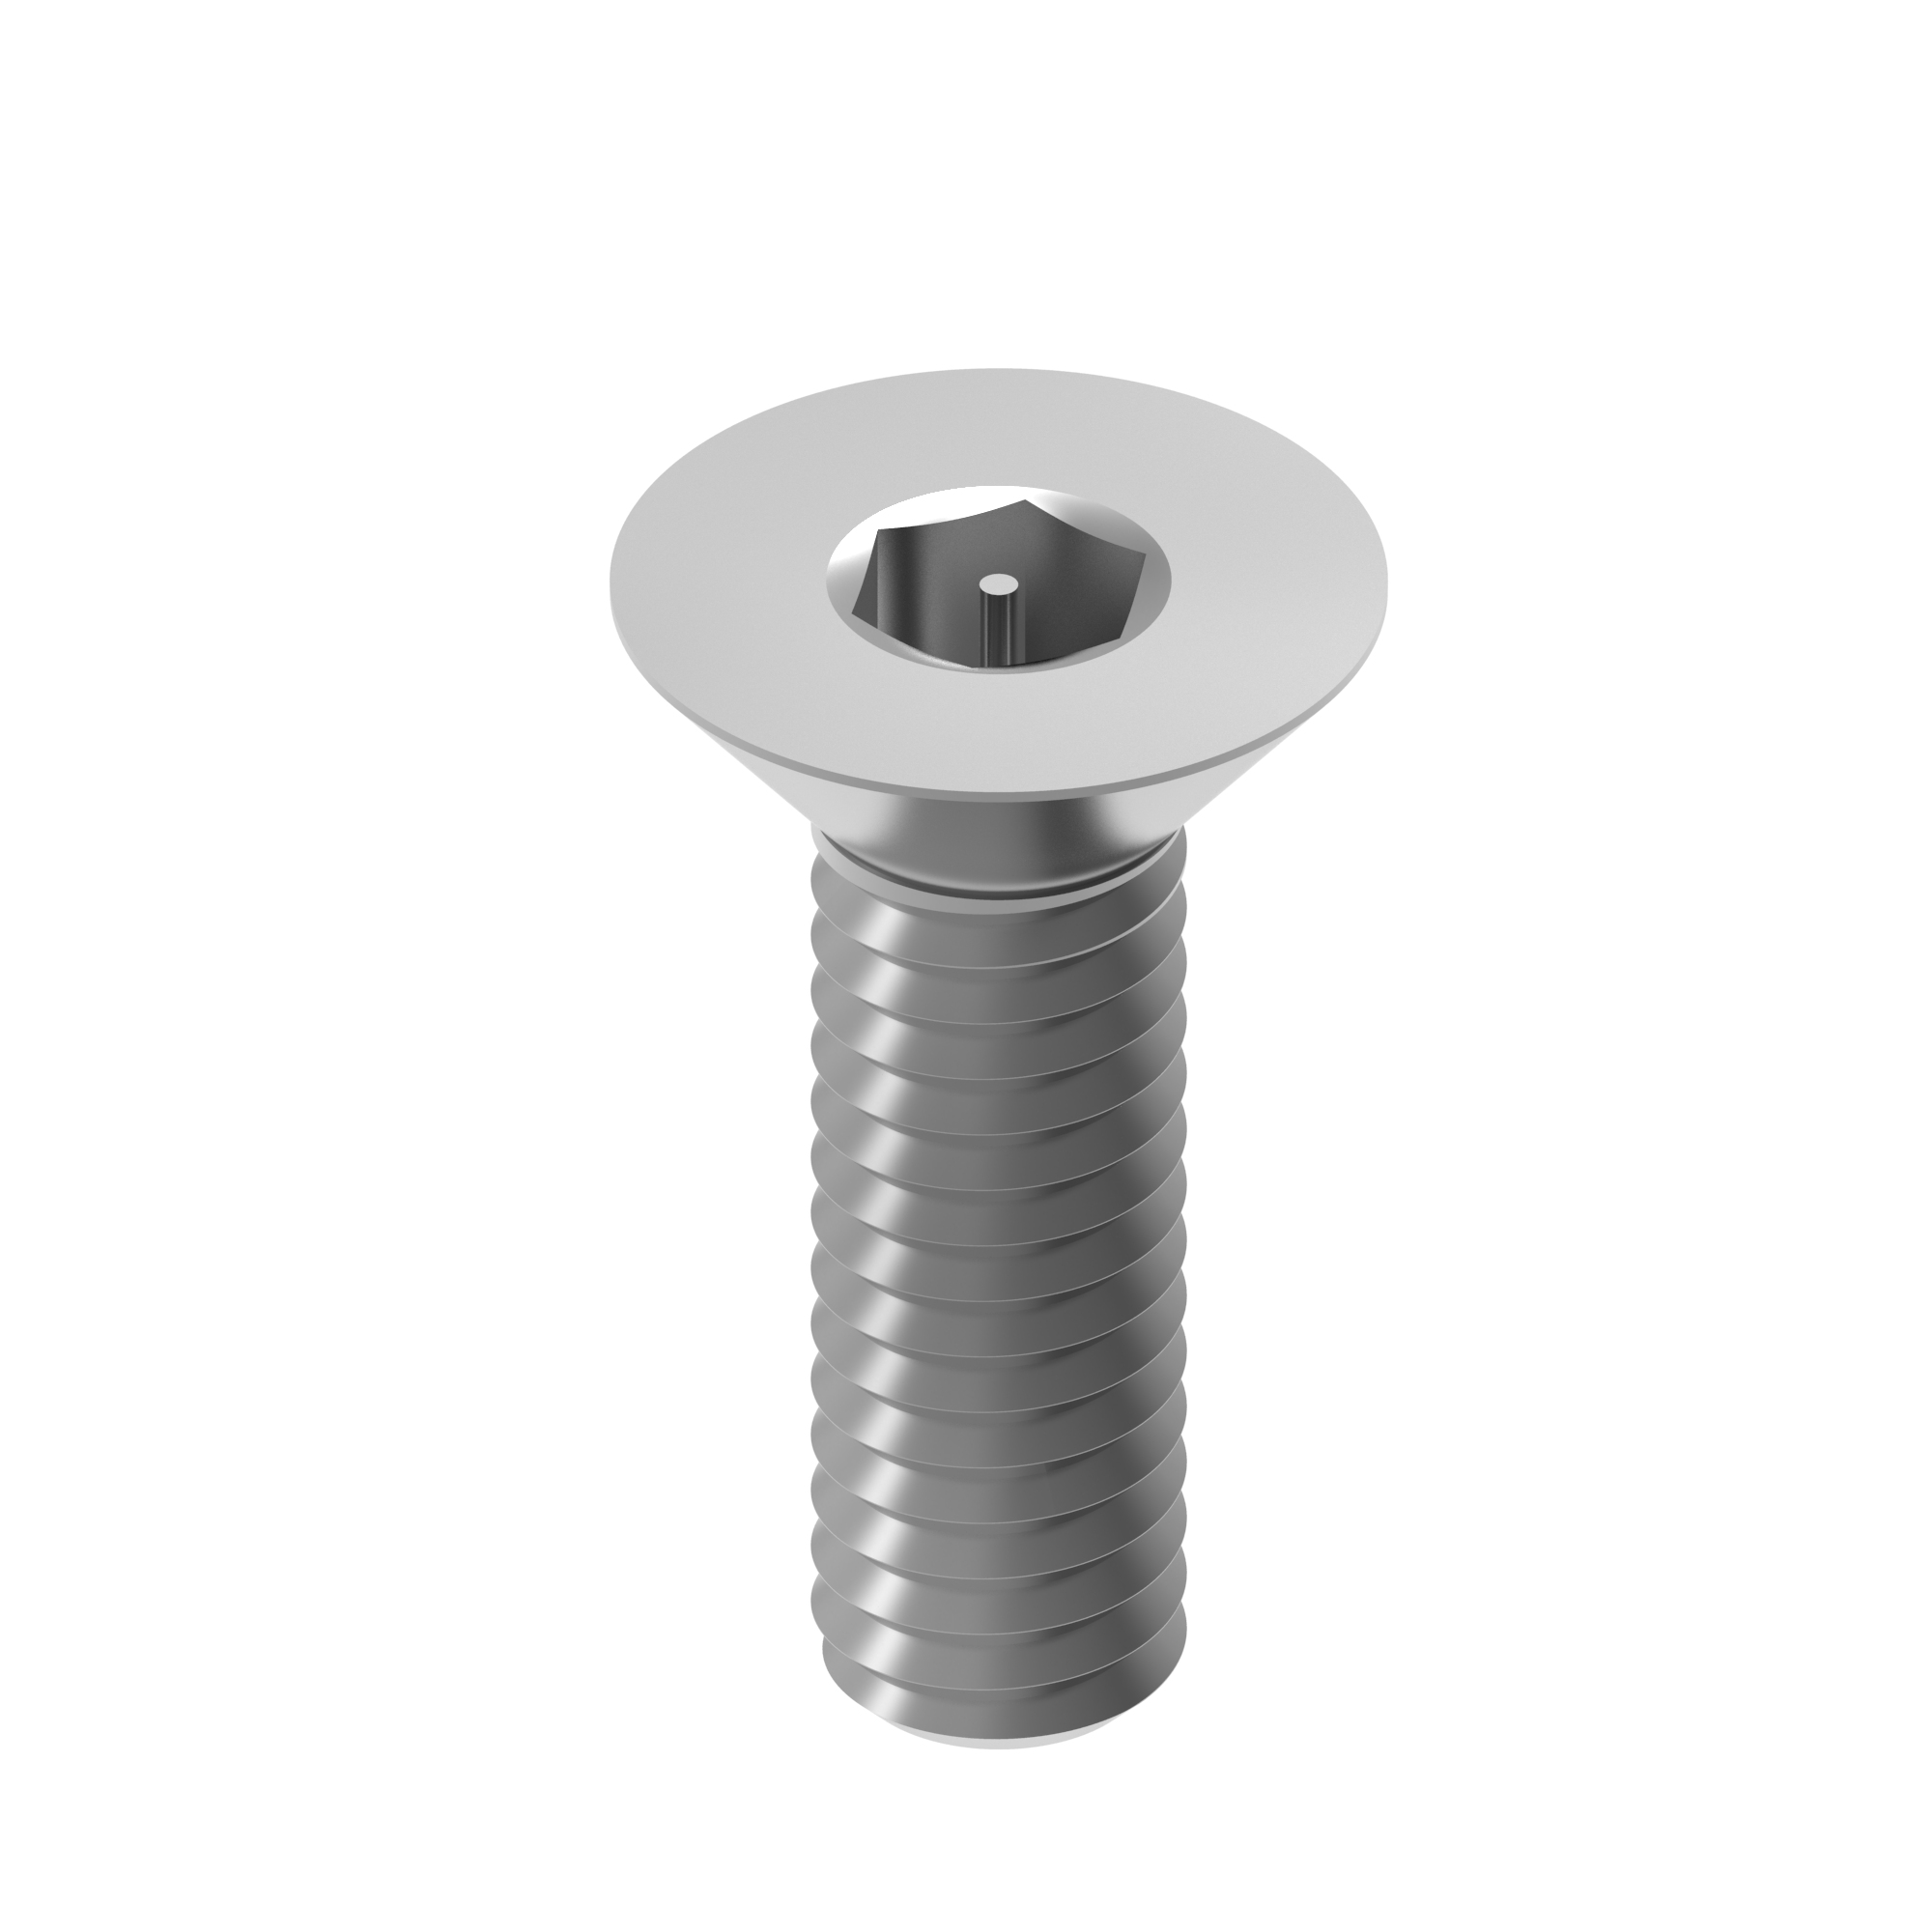 Hexagon socket machine screw